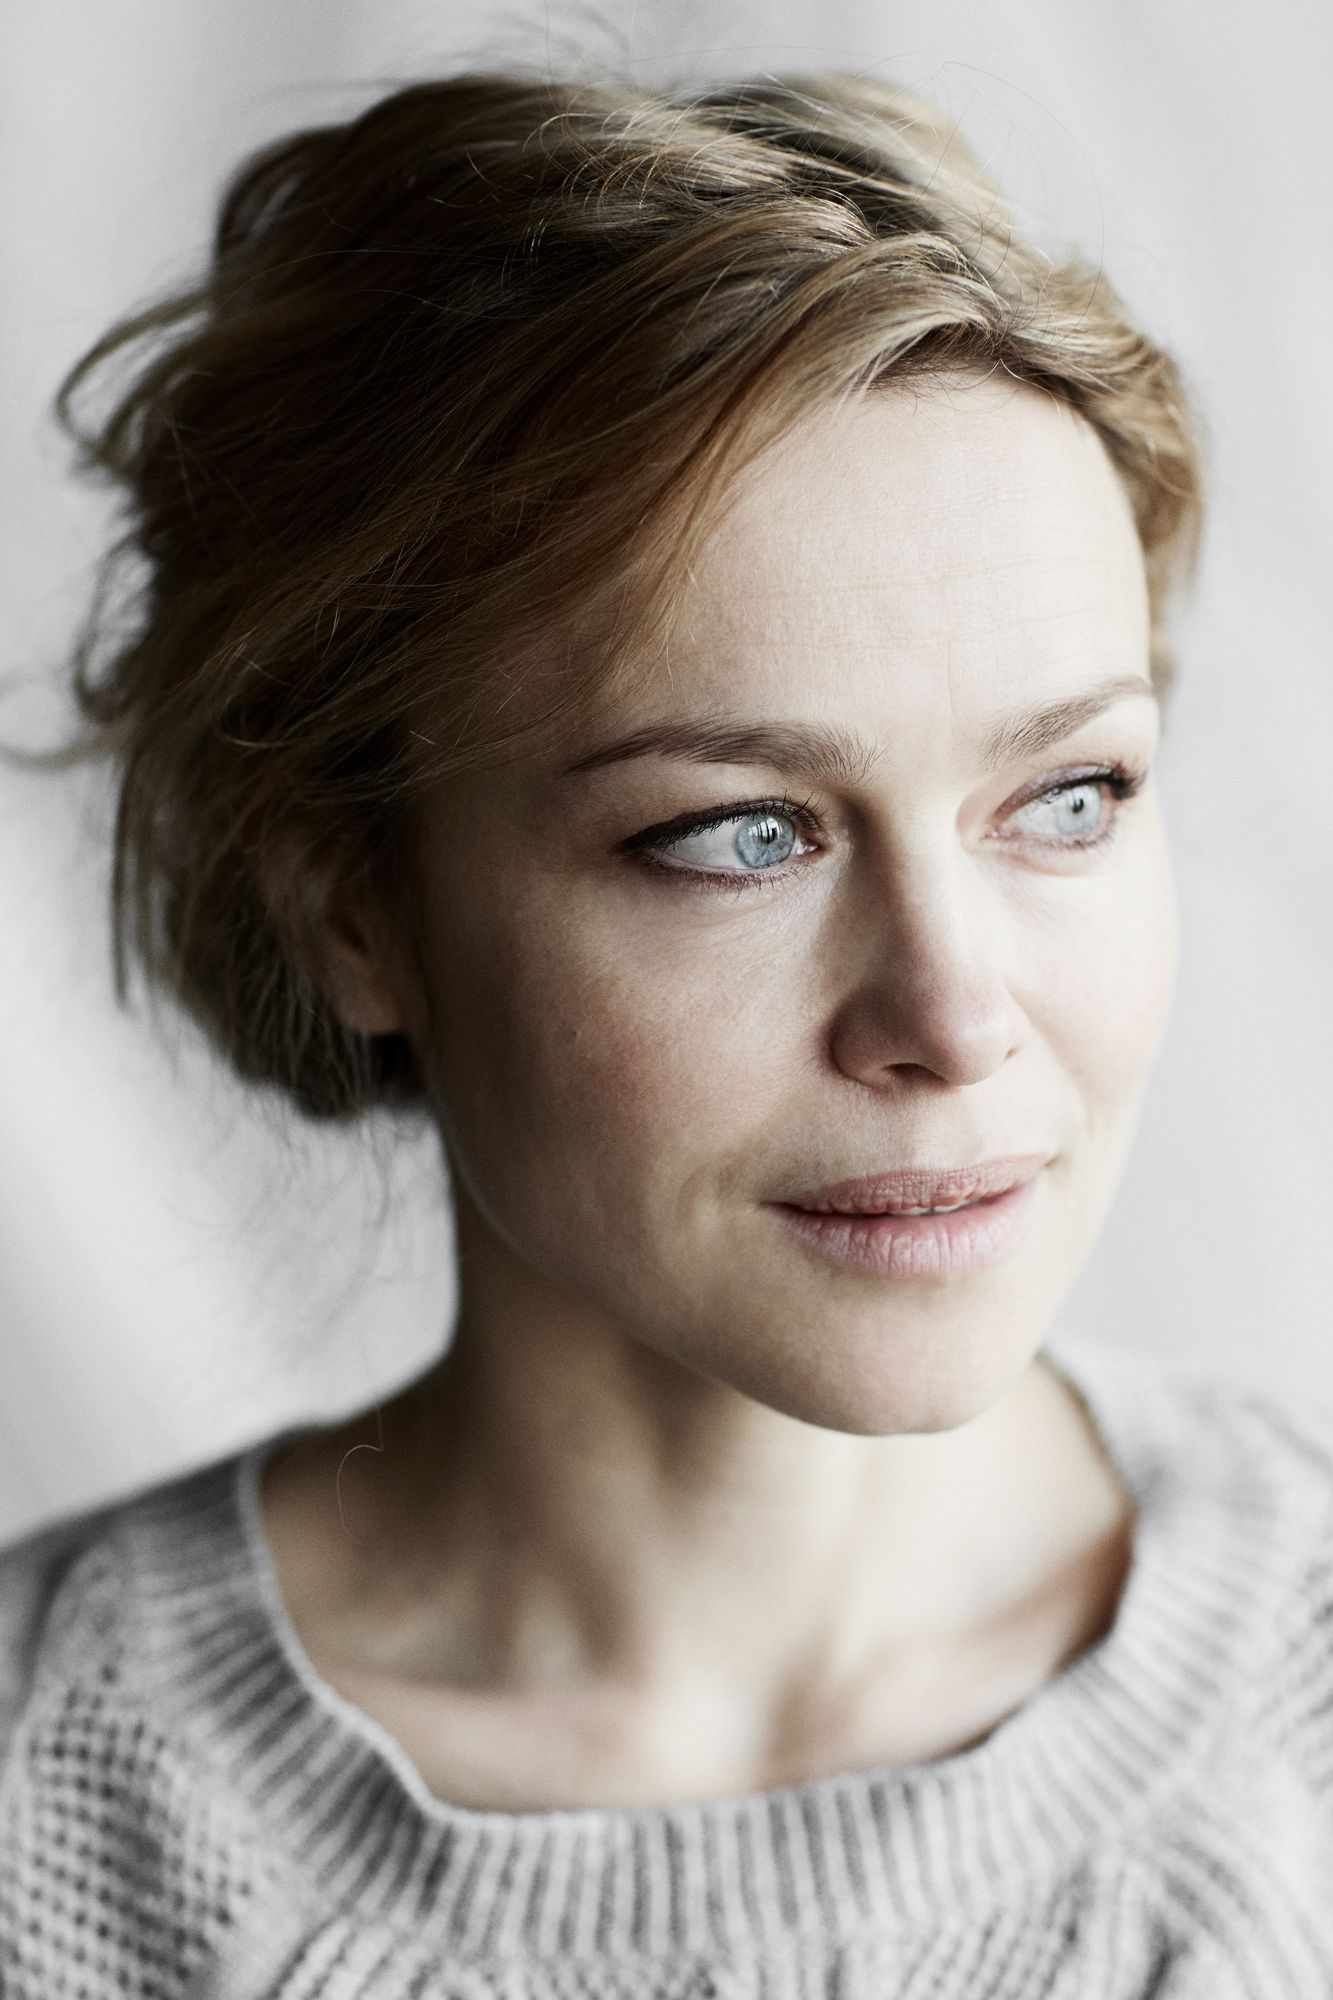 My Portrait Of Danish Actress Helle Fagralid Photographer Pia Winther Yellow Photography Danish Actresses Photography